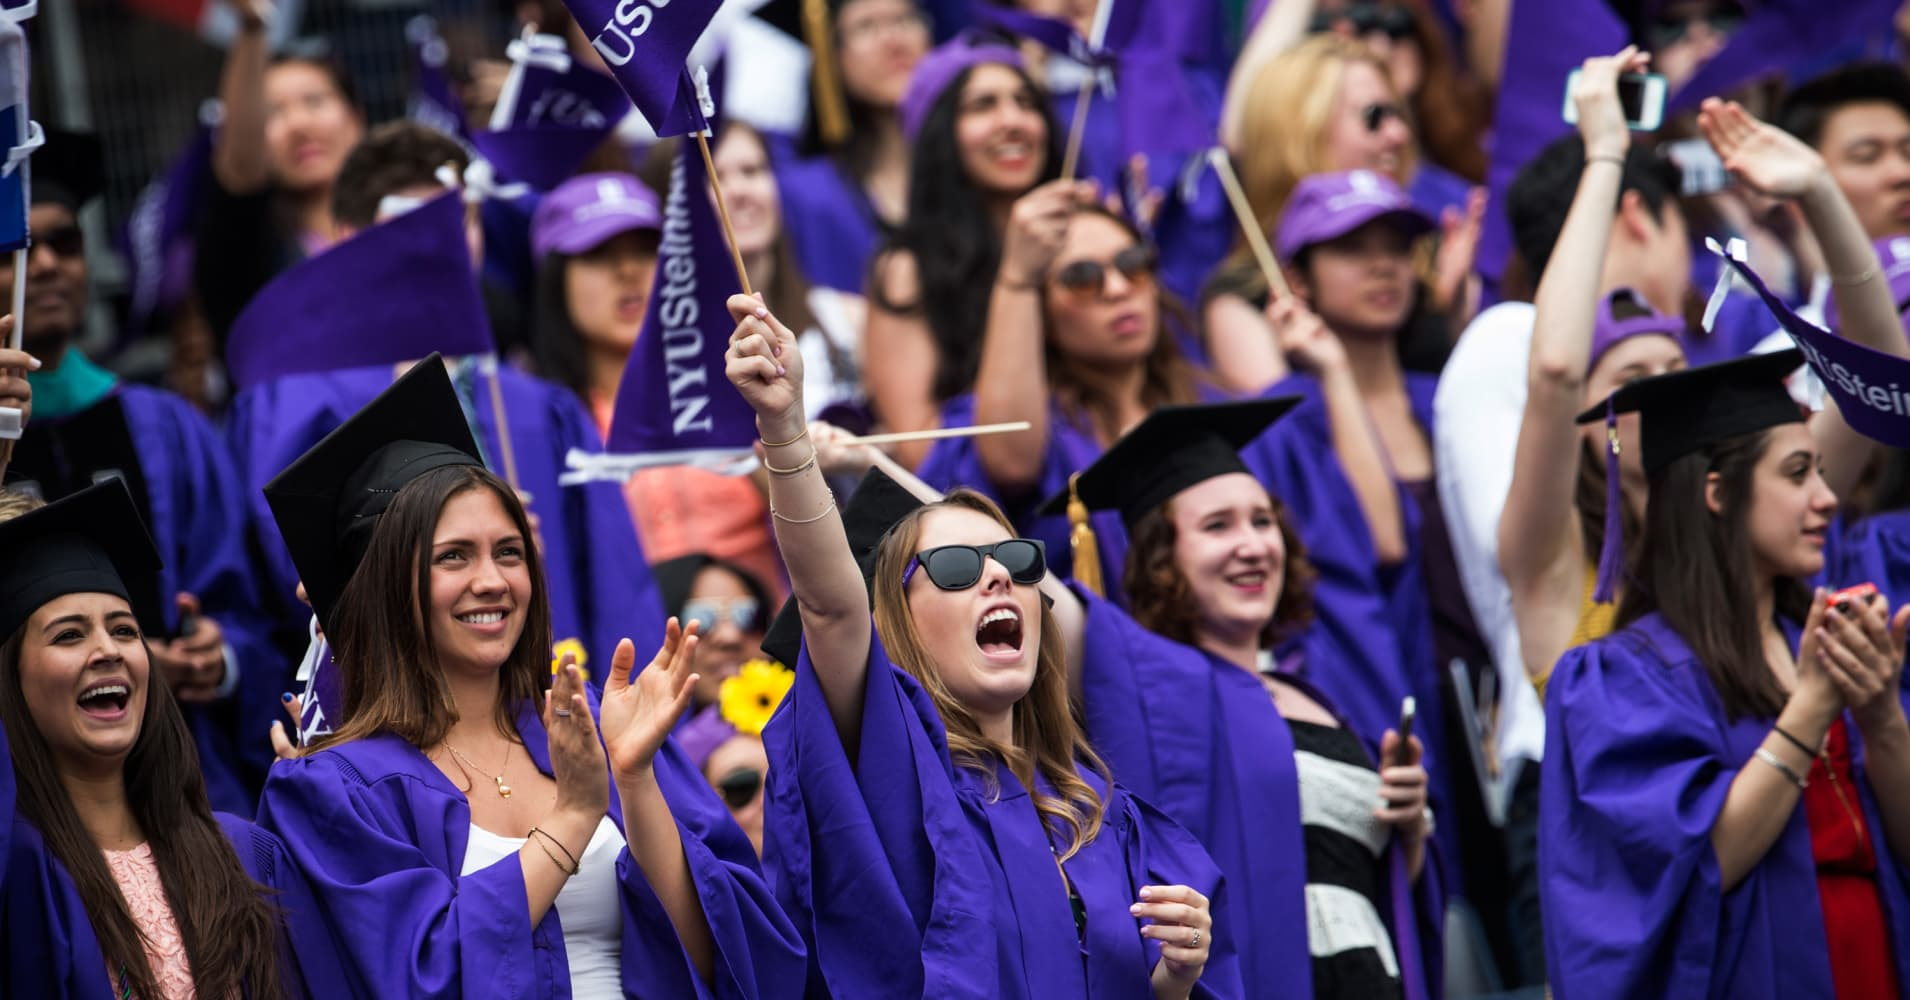 NYU's Stern School of Business cracked the top 10 best undergraduate business programs